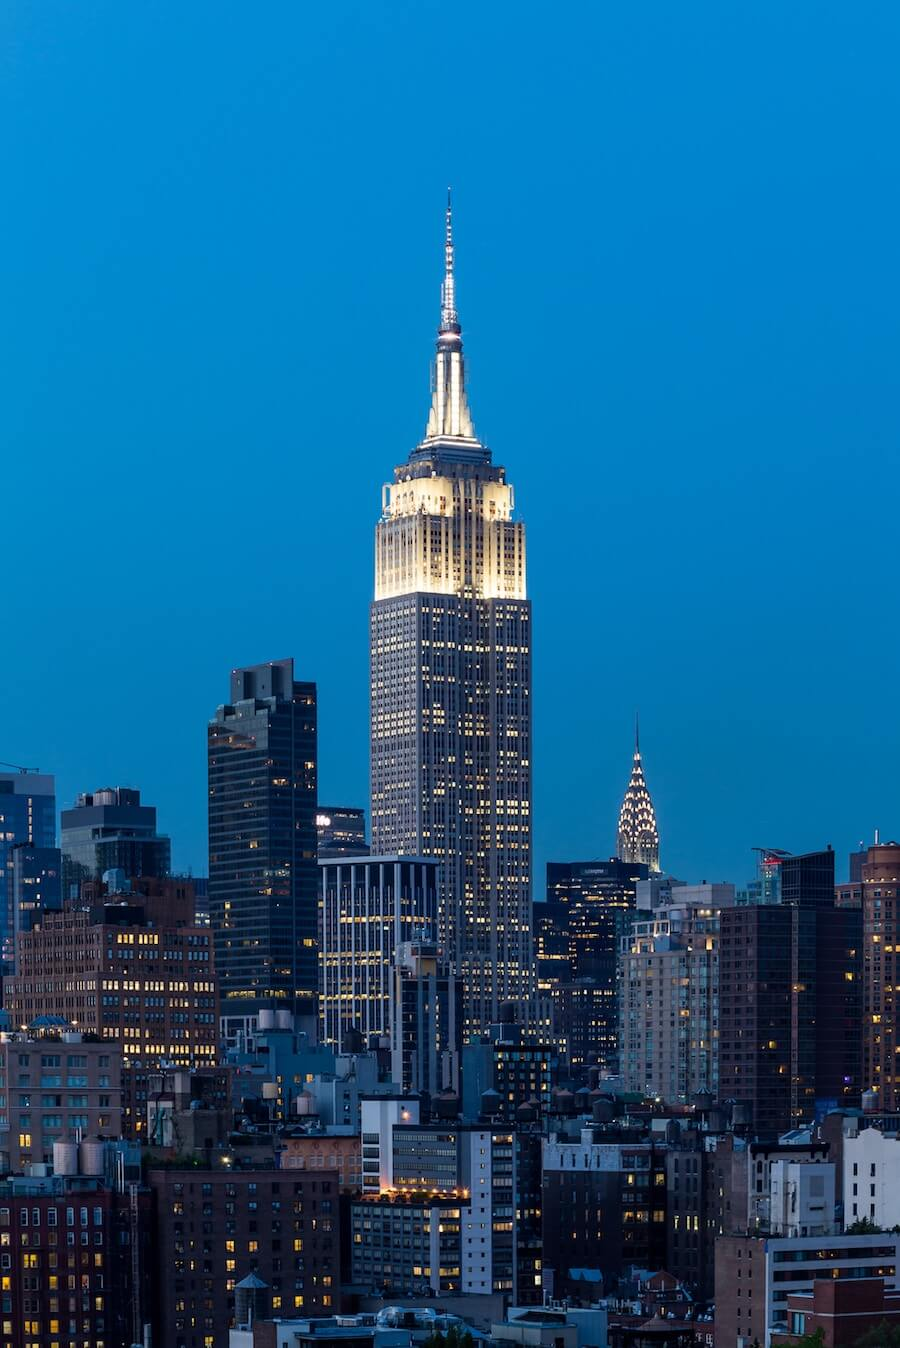 brian-sugden-empire-state-building-new-york.jpg